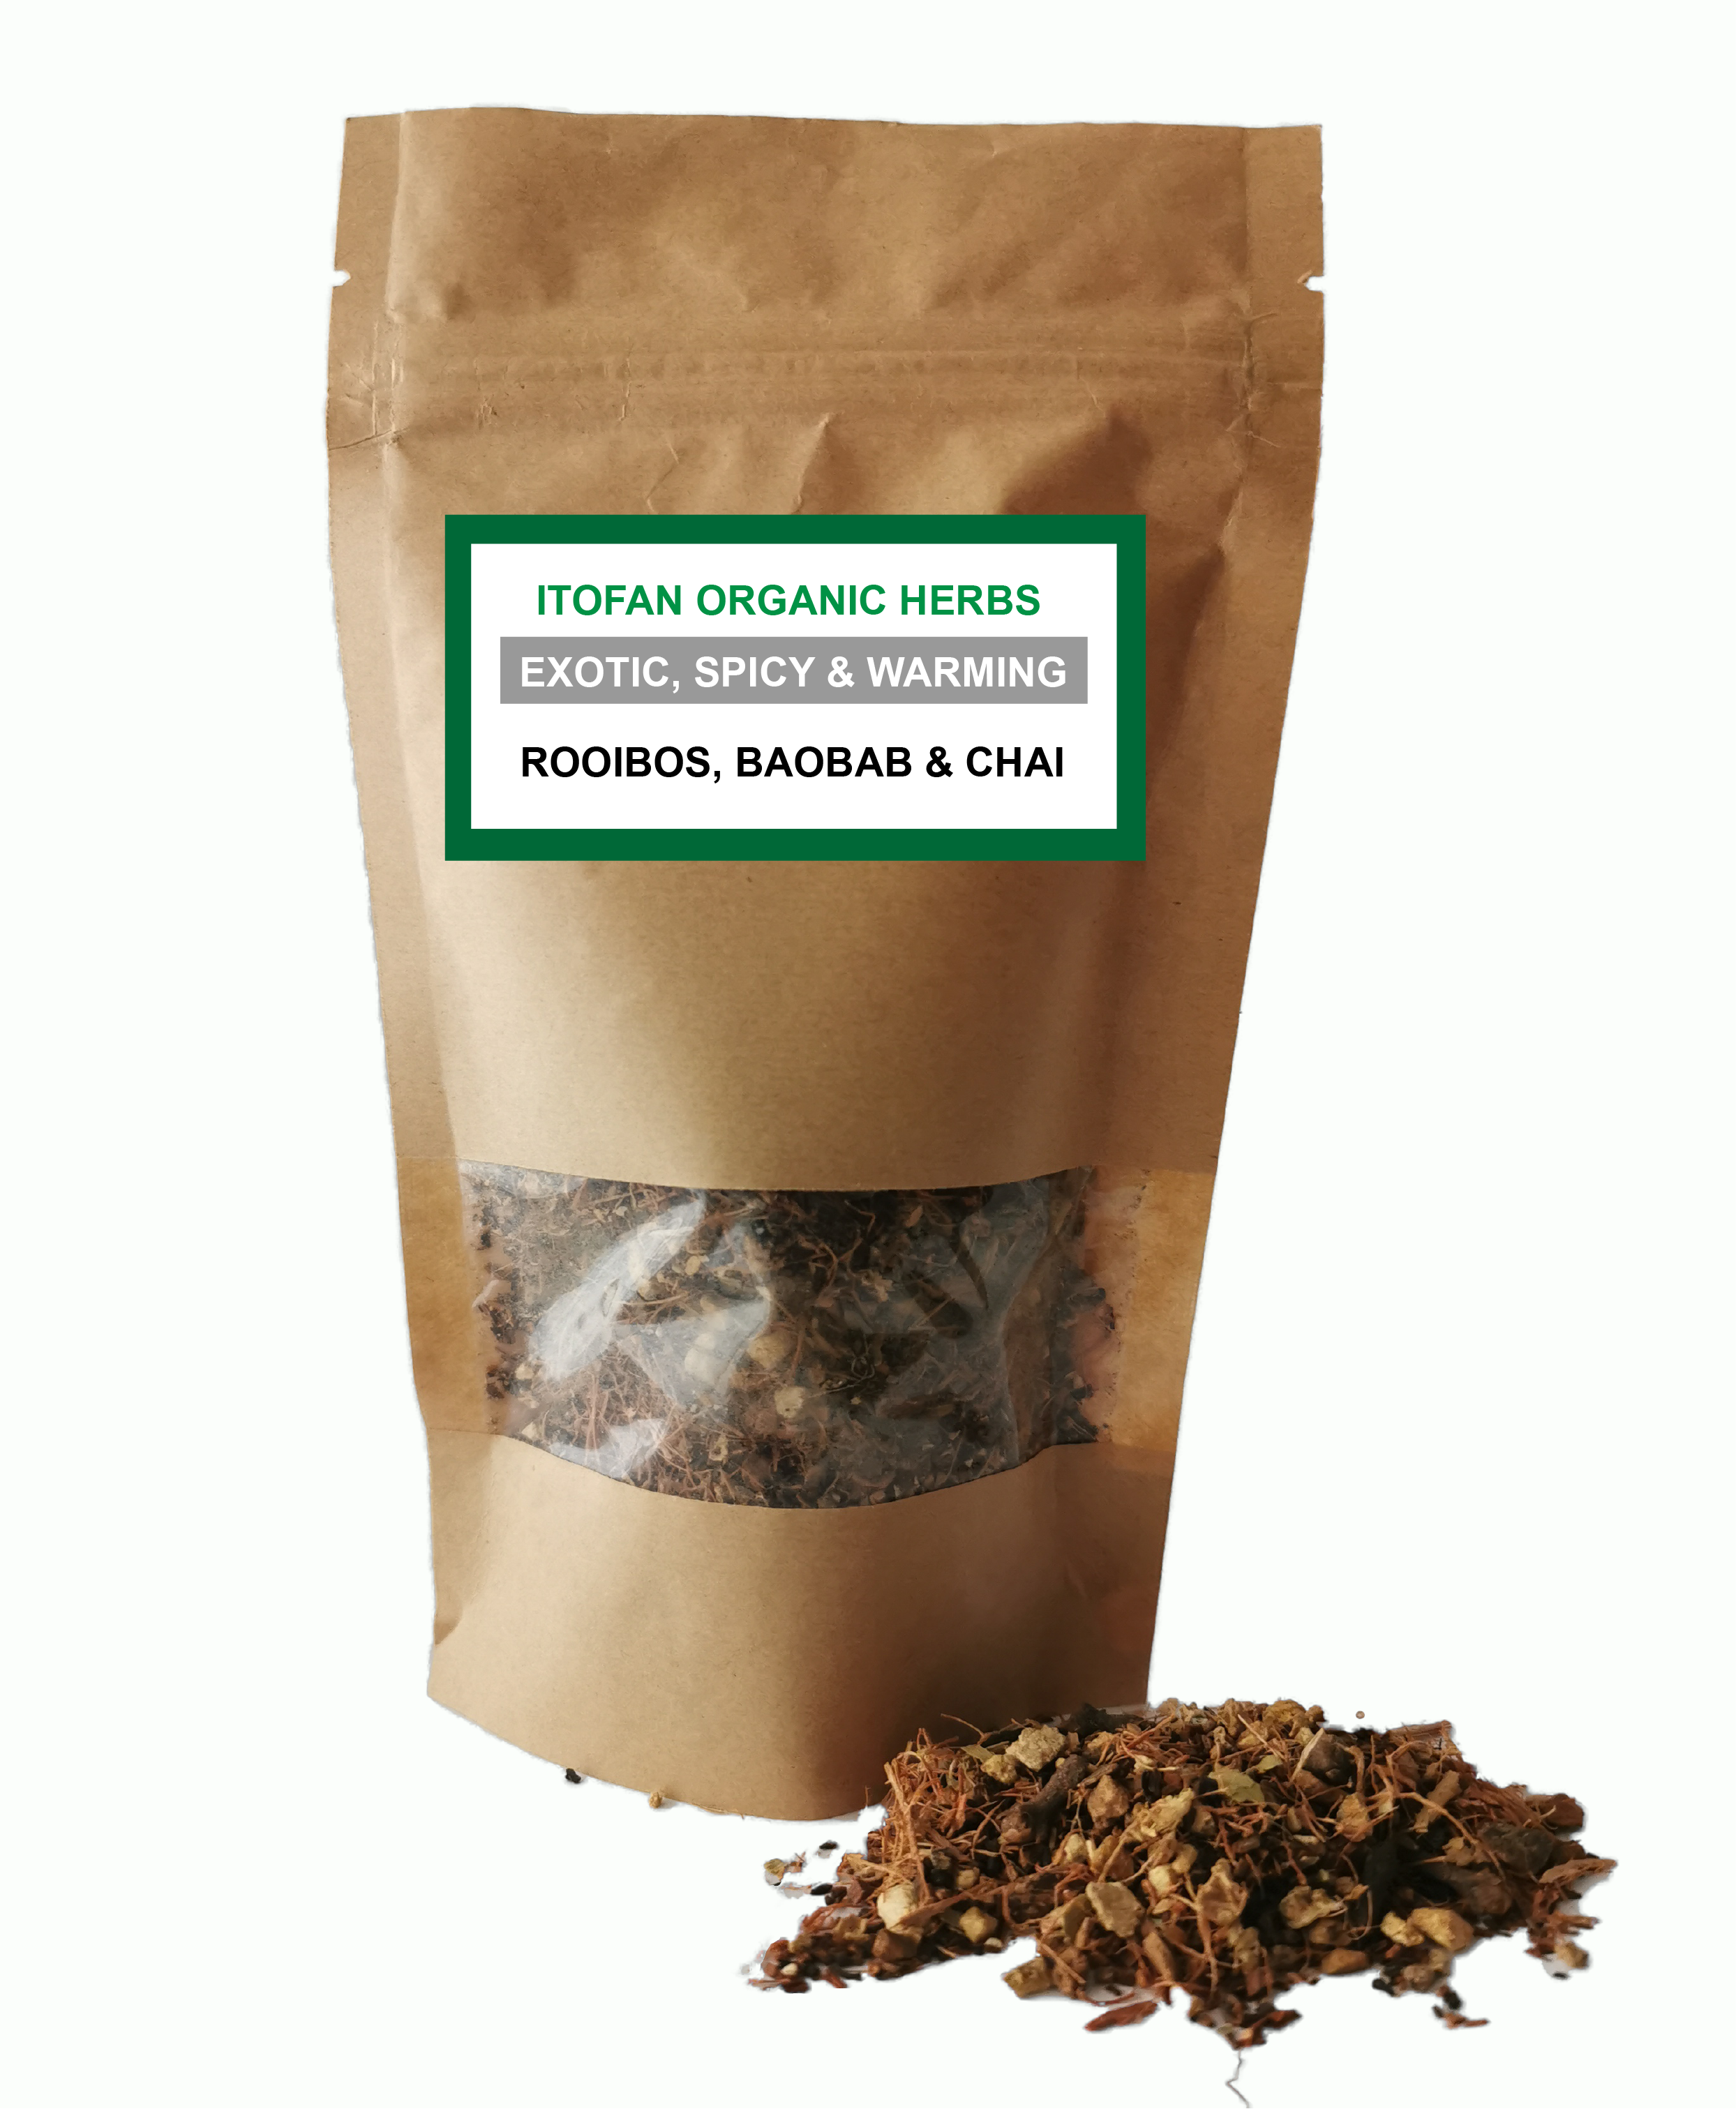 Rooibos, Baobab & Chai - Traditional Herbal Blend - 100% Organic - Indigestion/Gut health/Nausea